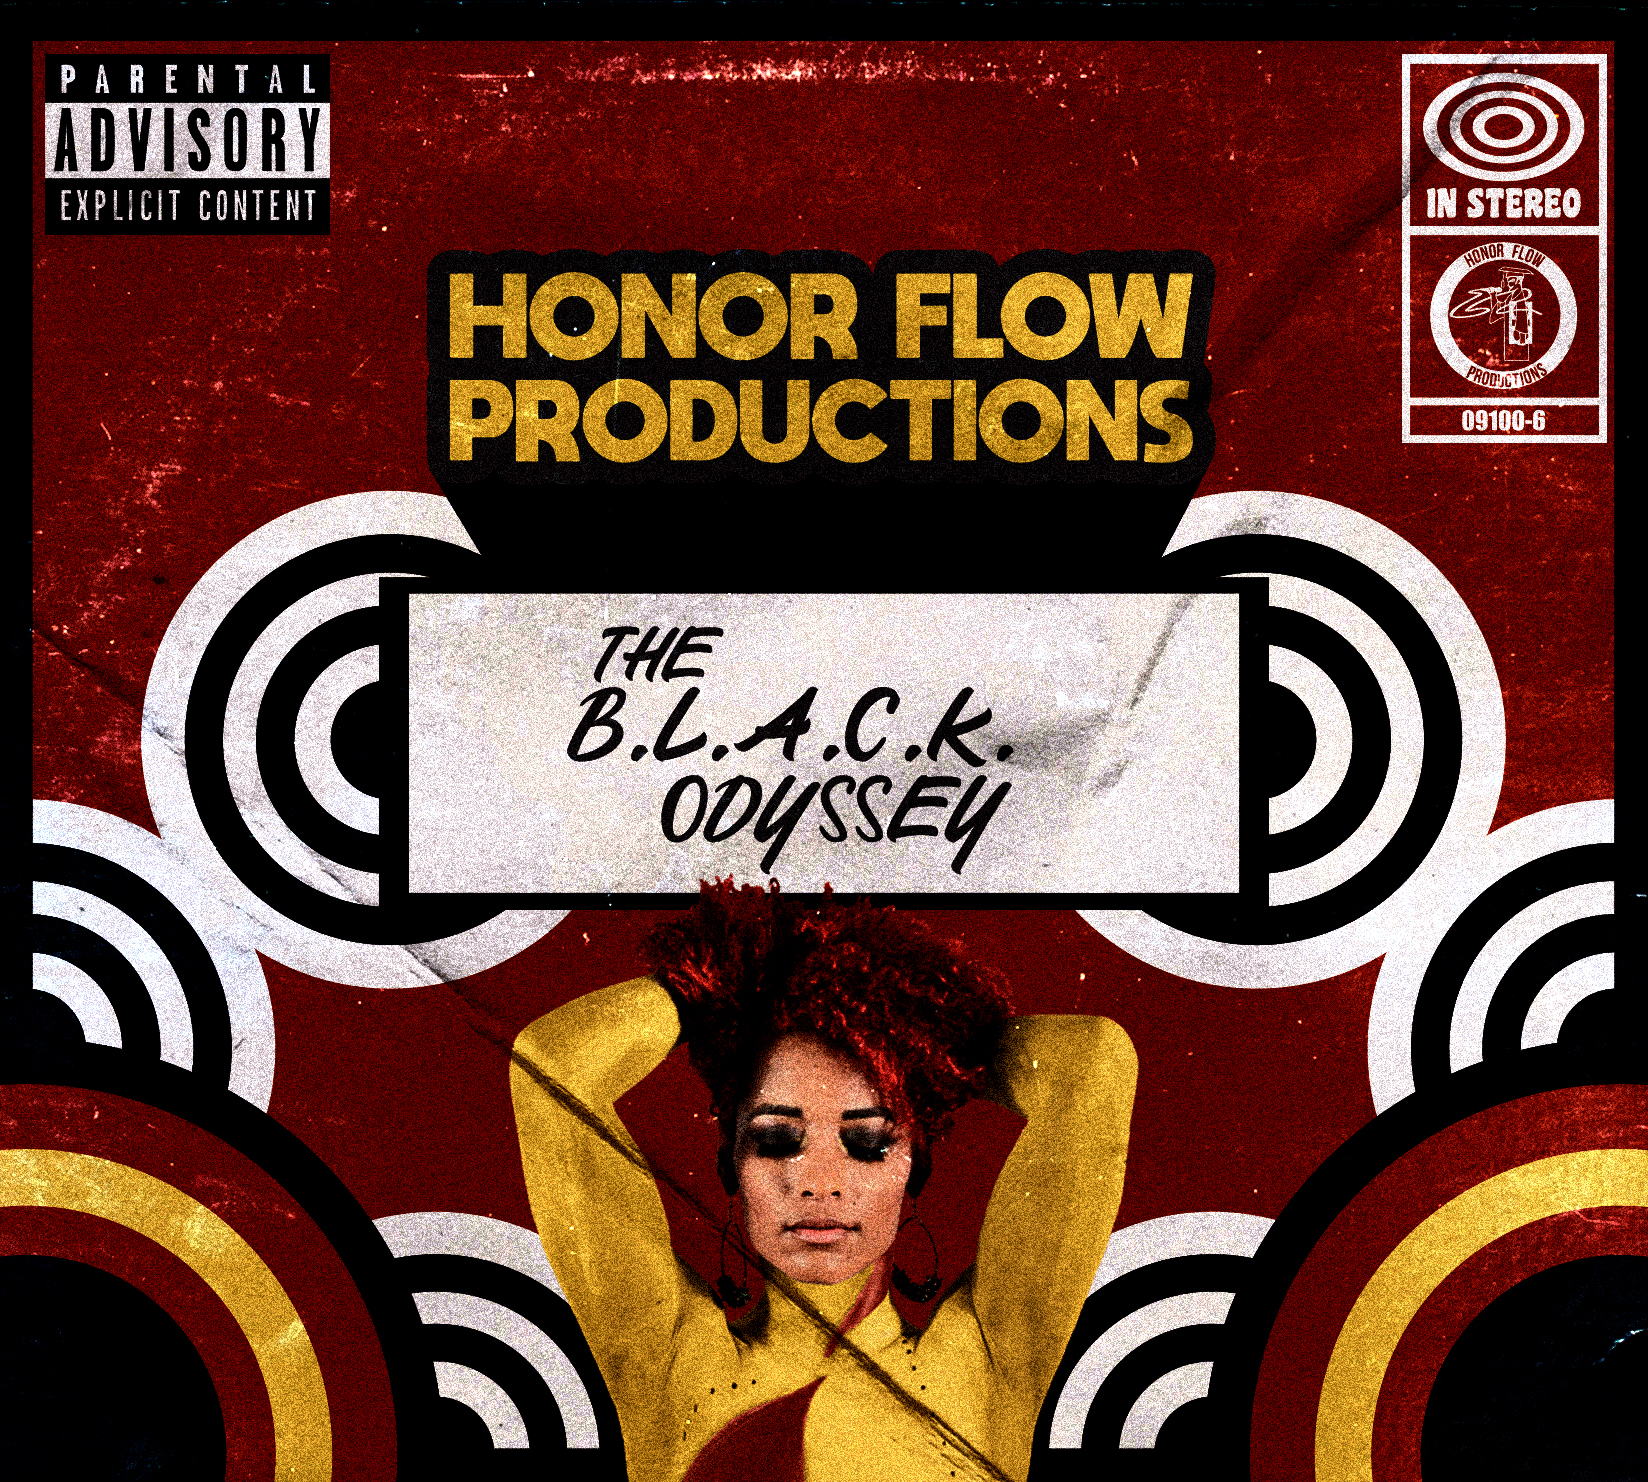 Honor Flow Productions - The B.L.A.C.K. Odyssey - album cover